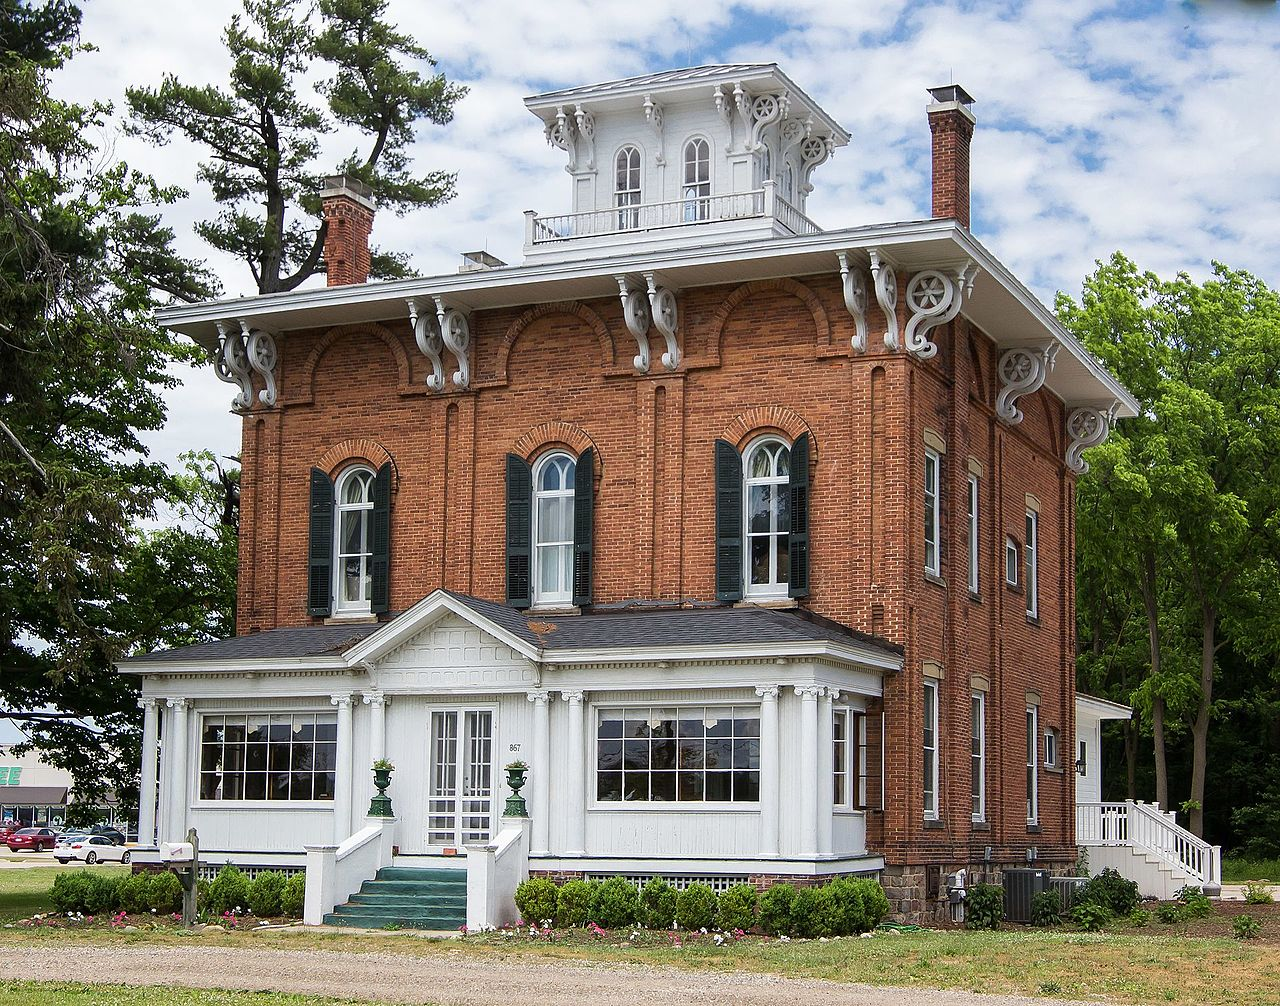 The Abram C. Fisk House was built in 1863 and is today the location of Blue Hat Coffee.